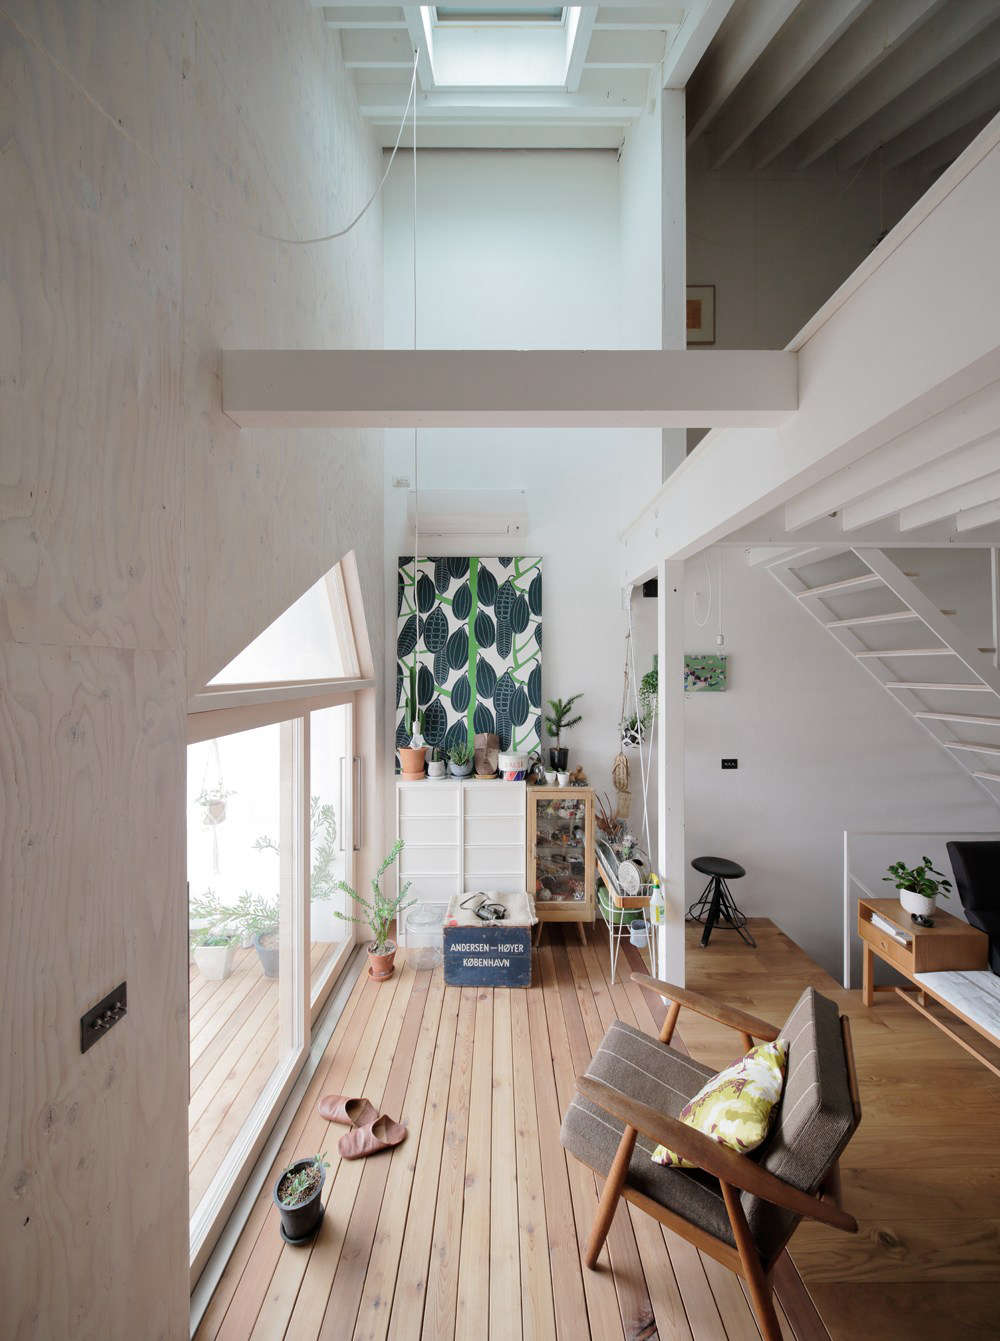 The living area is oriented to the front, south-facing balcony and brightened by a skylight. That's the bedroom overhead.